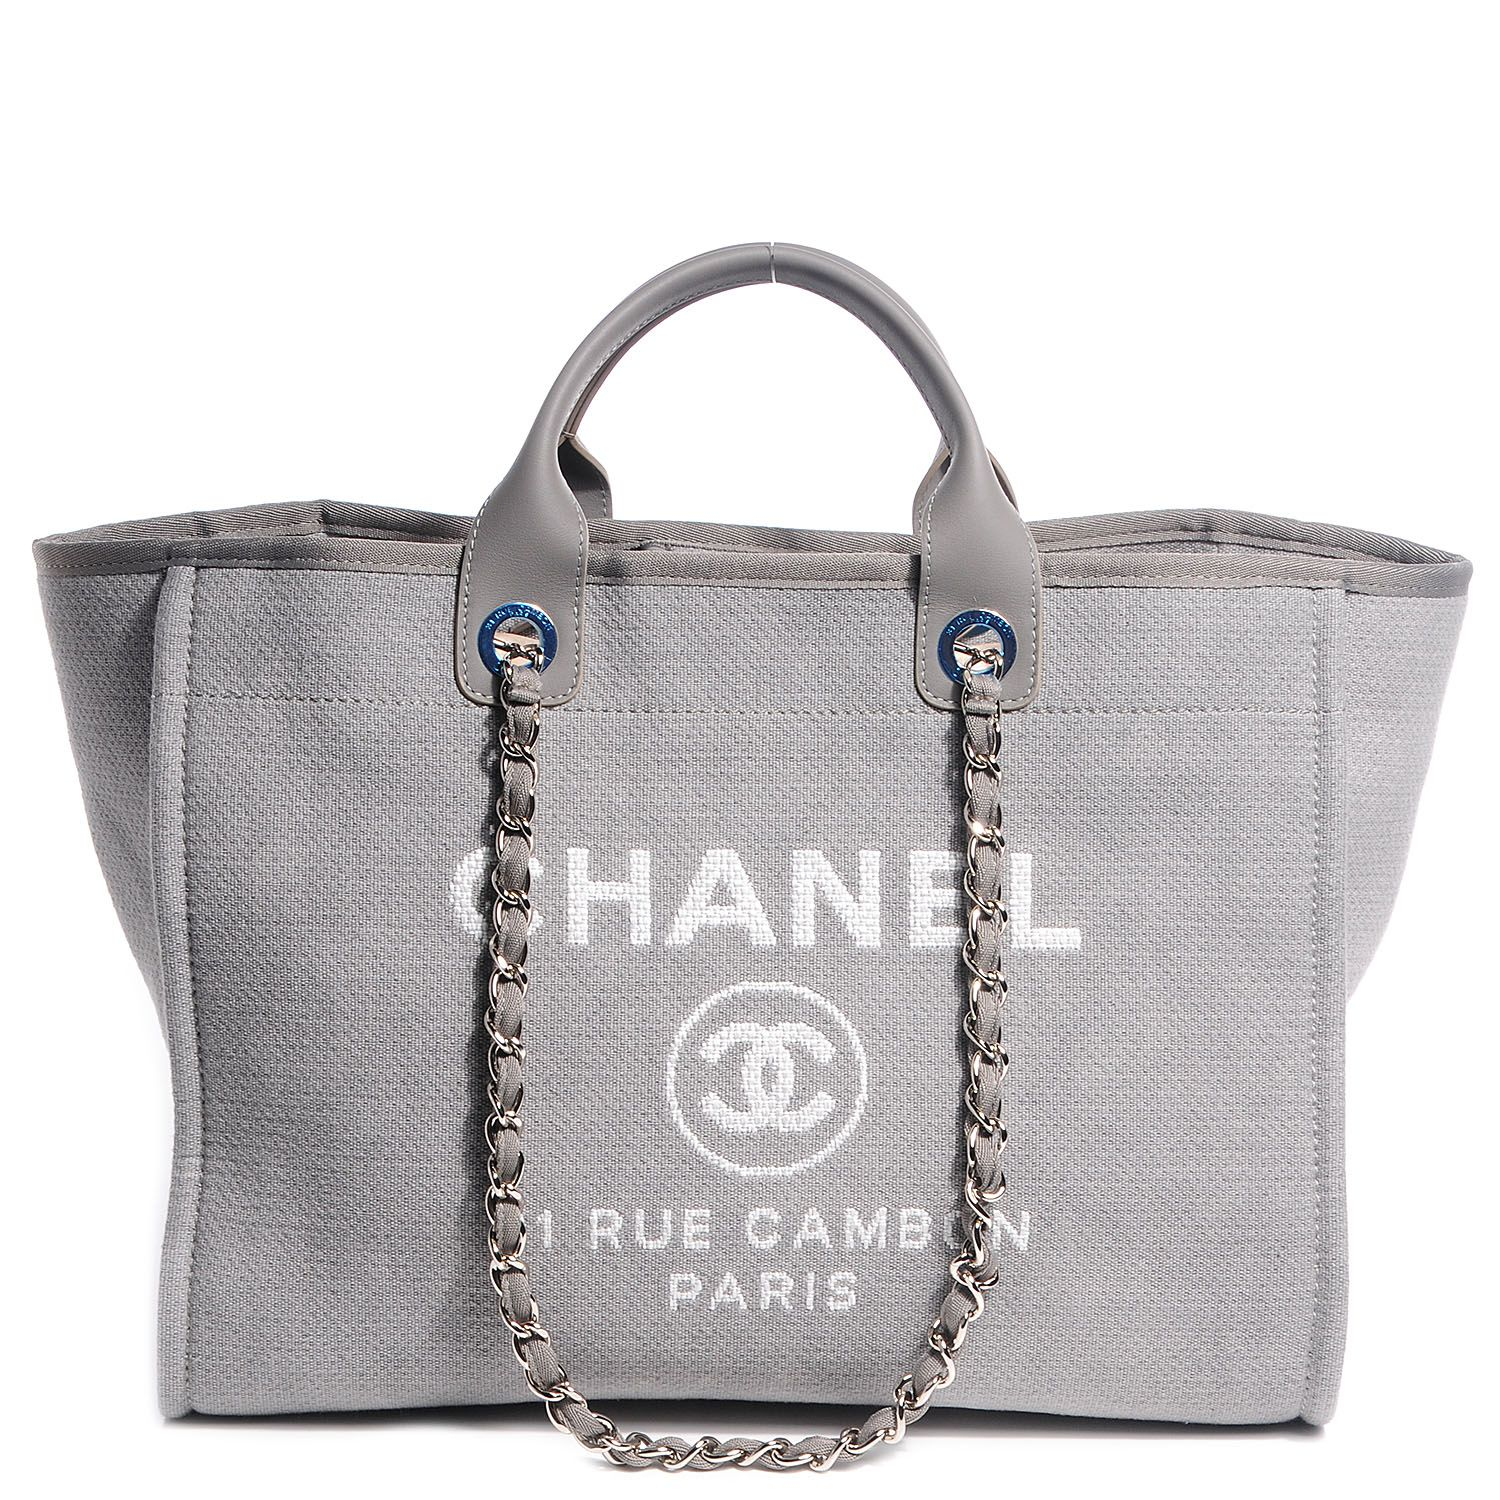 1f4c0bf419d5 CHANEL Canvas Deauville Large Tote Grey | My Style | Chanel tote bag ...